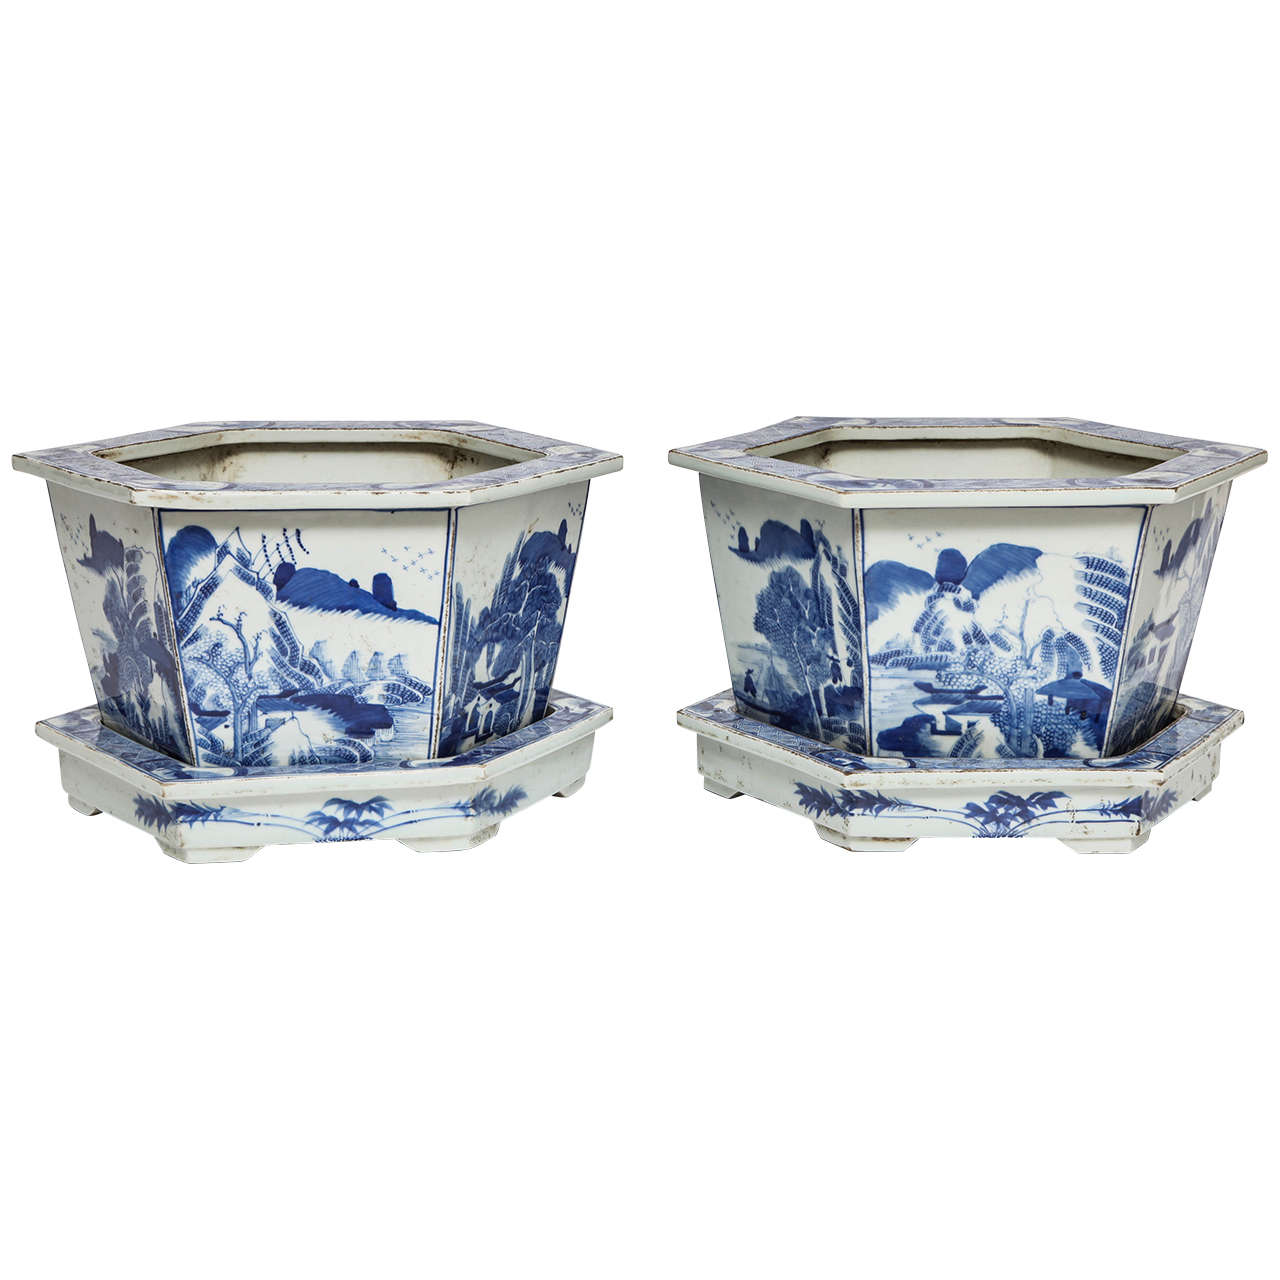 Pair of Chinese Blue and White Porcelain Jardinieres on Stands, 19th Century